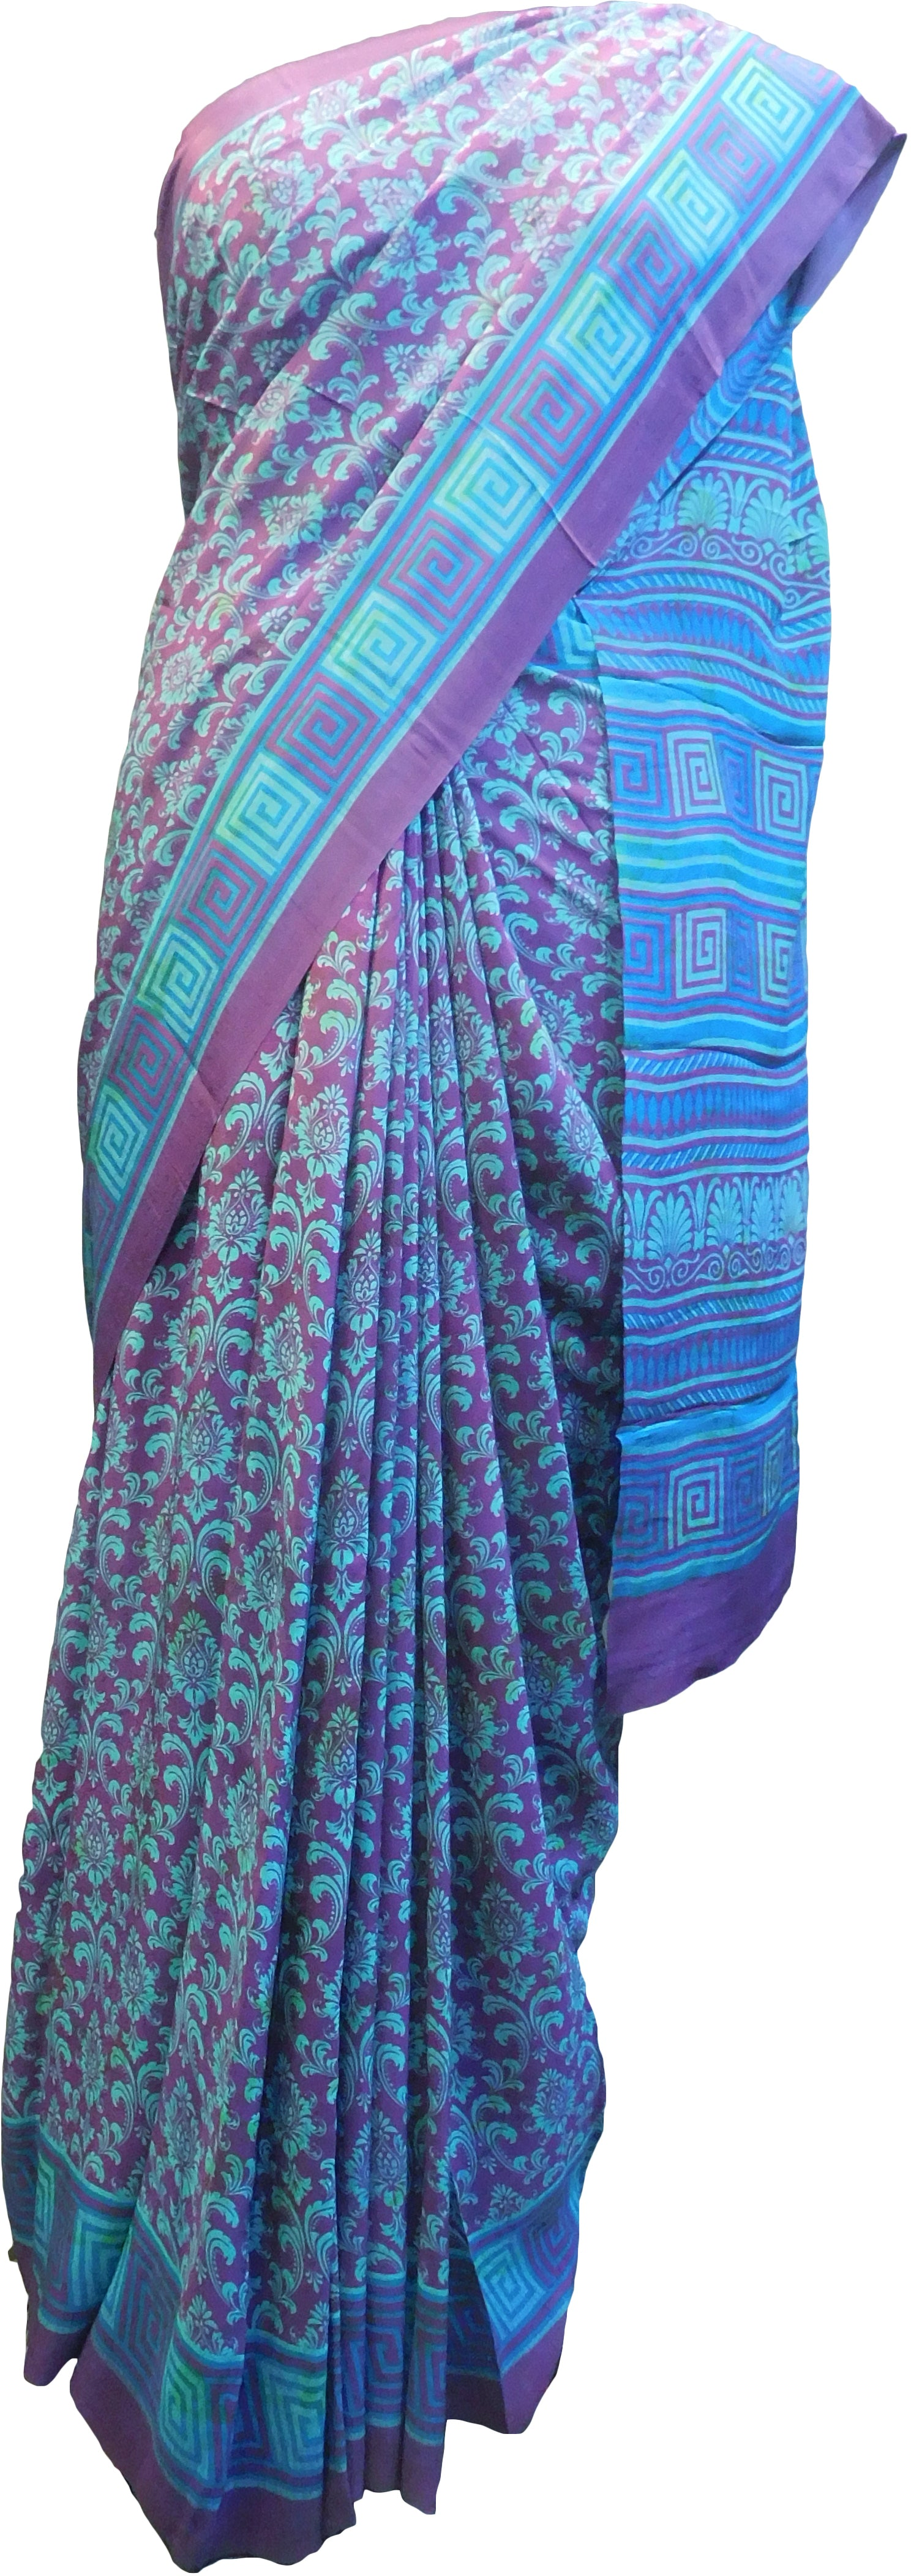 Multicolor Designer Wedding Partywear Pure Crepe Hand Brush Reprinted Kolkata Saree Sari RP257